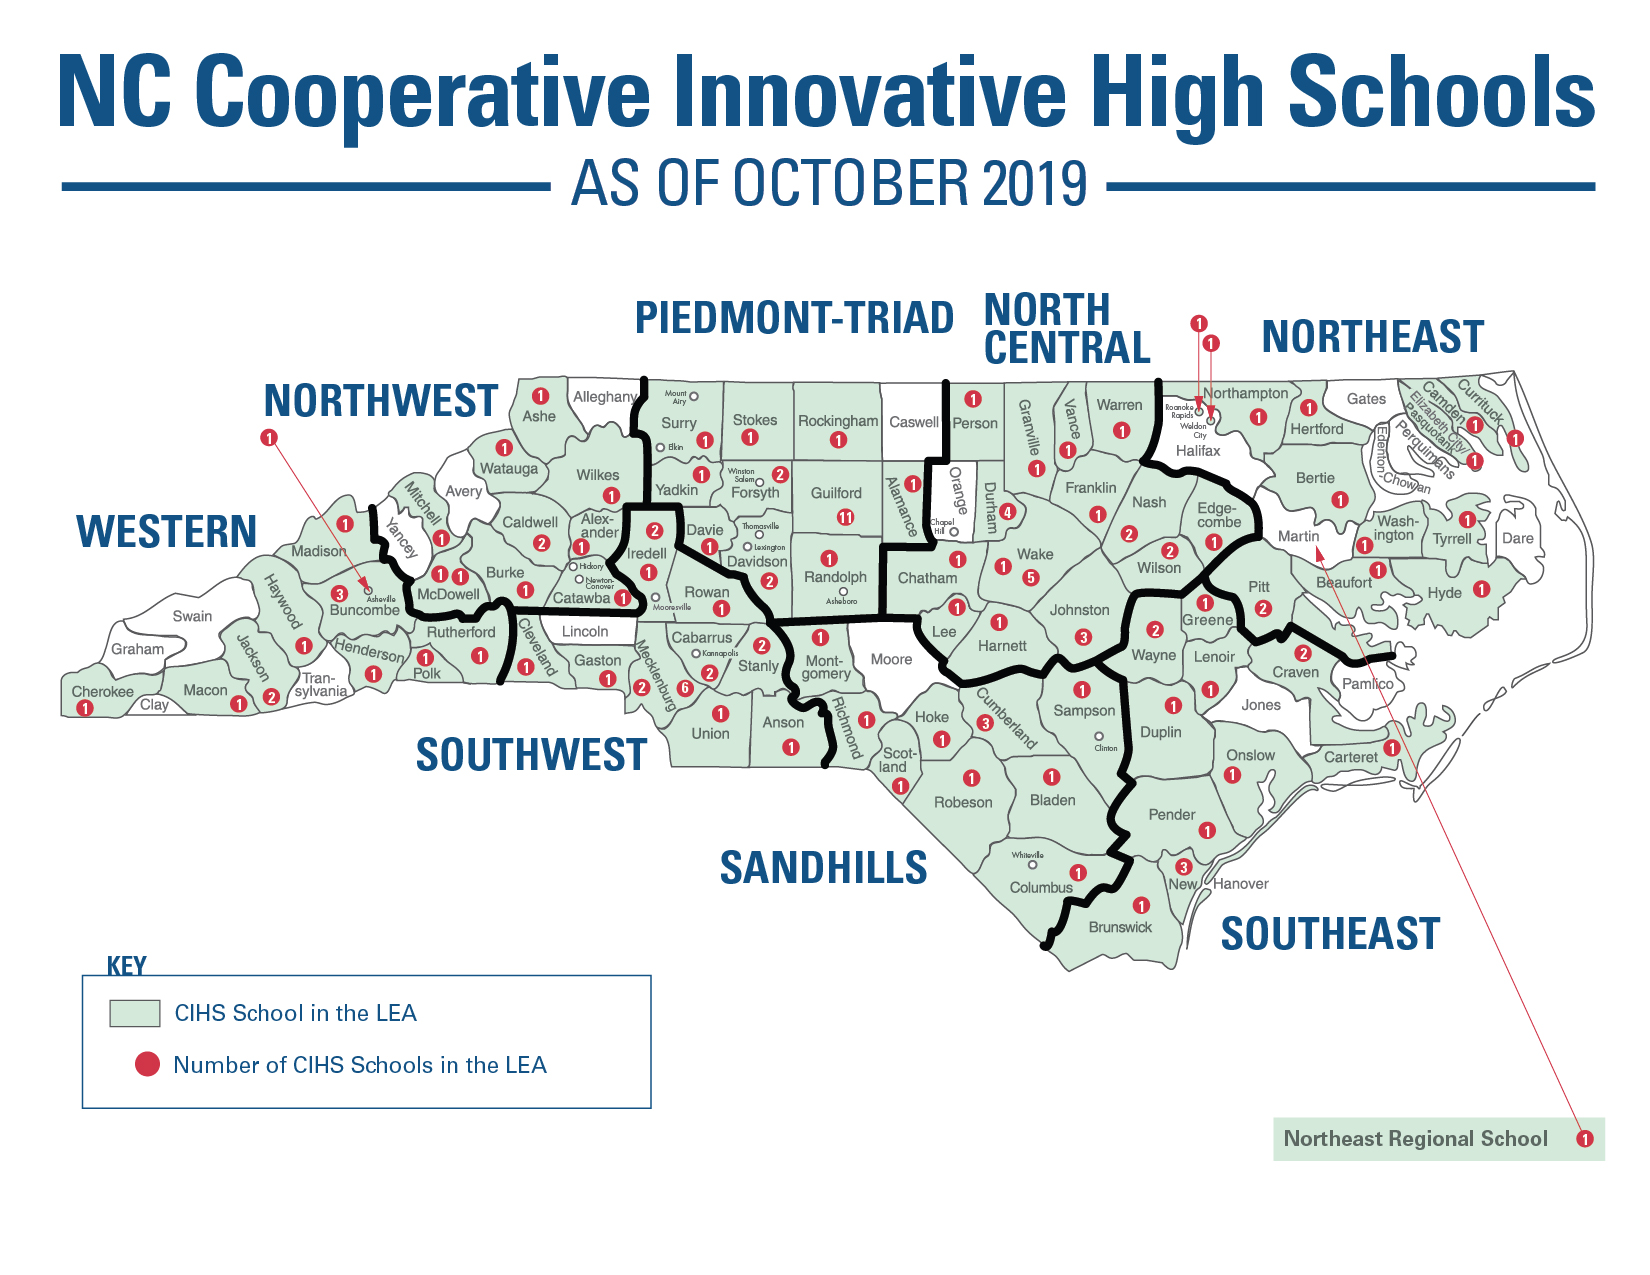 NC cooperative innovative high schools map